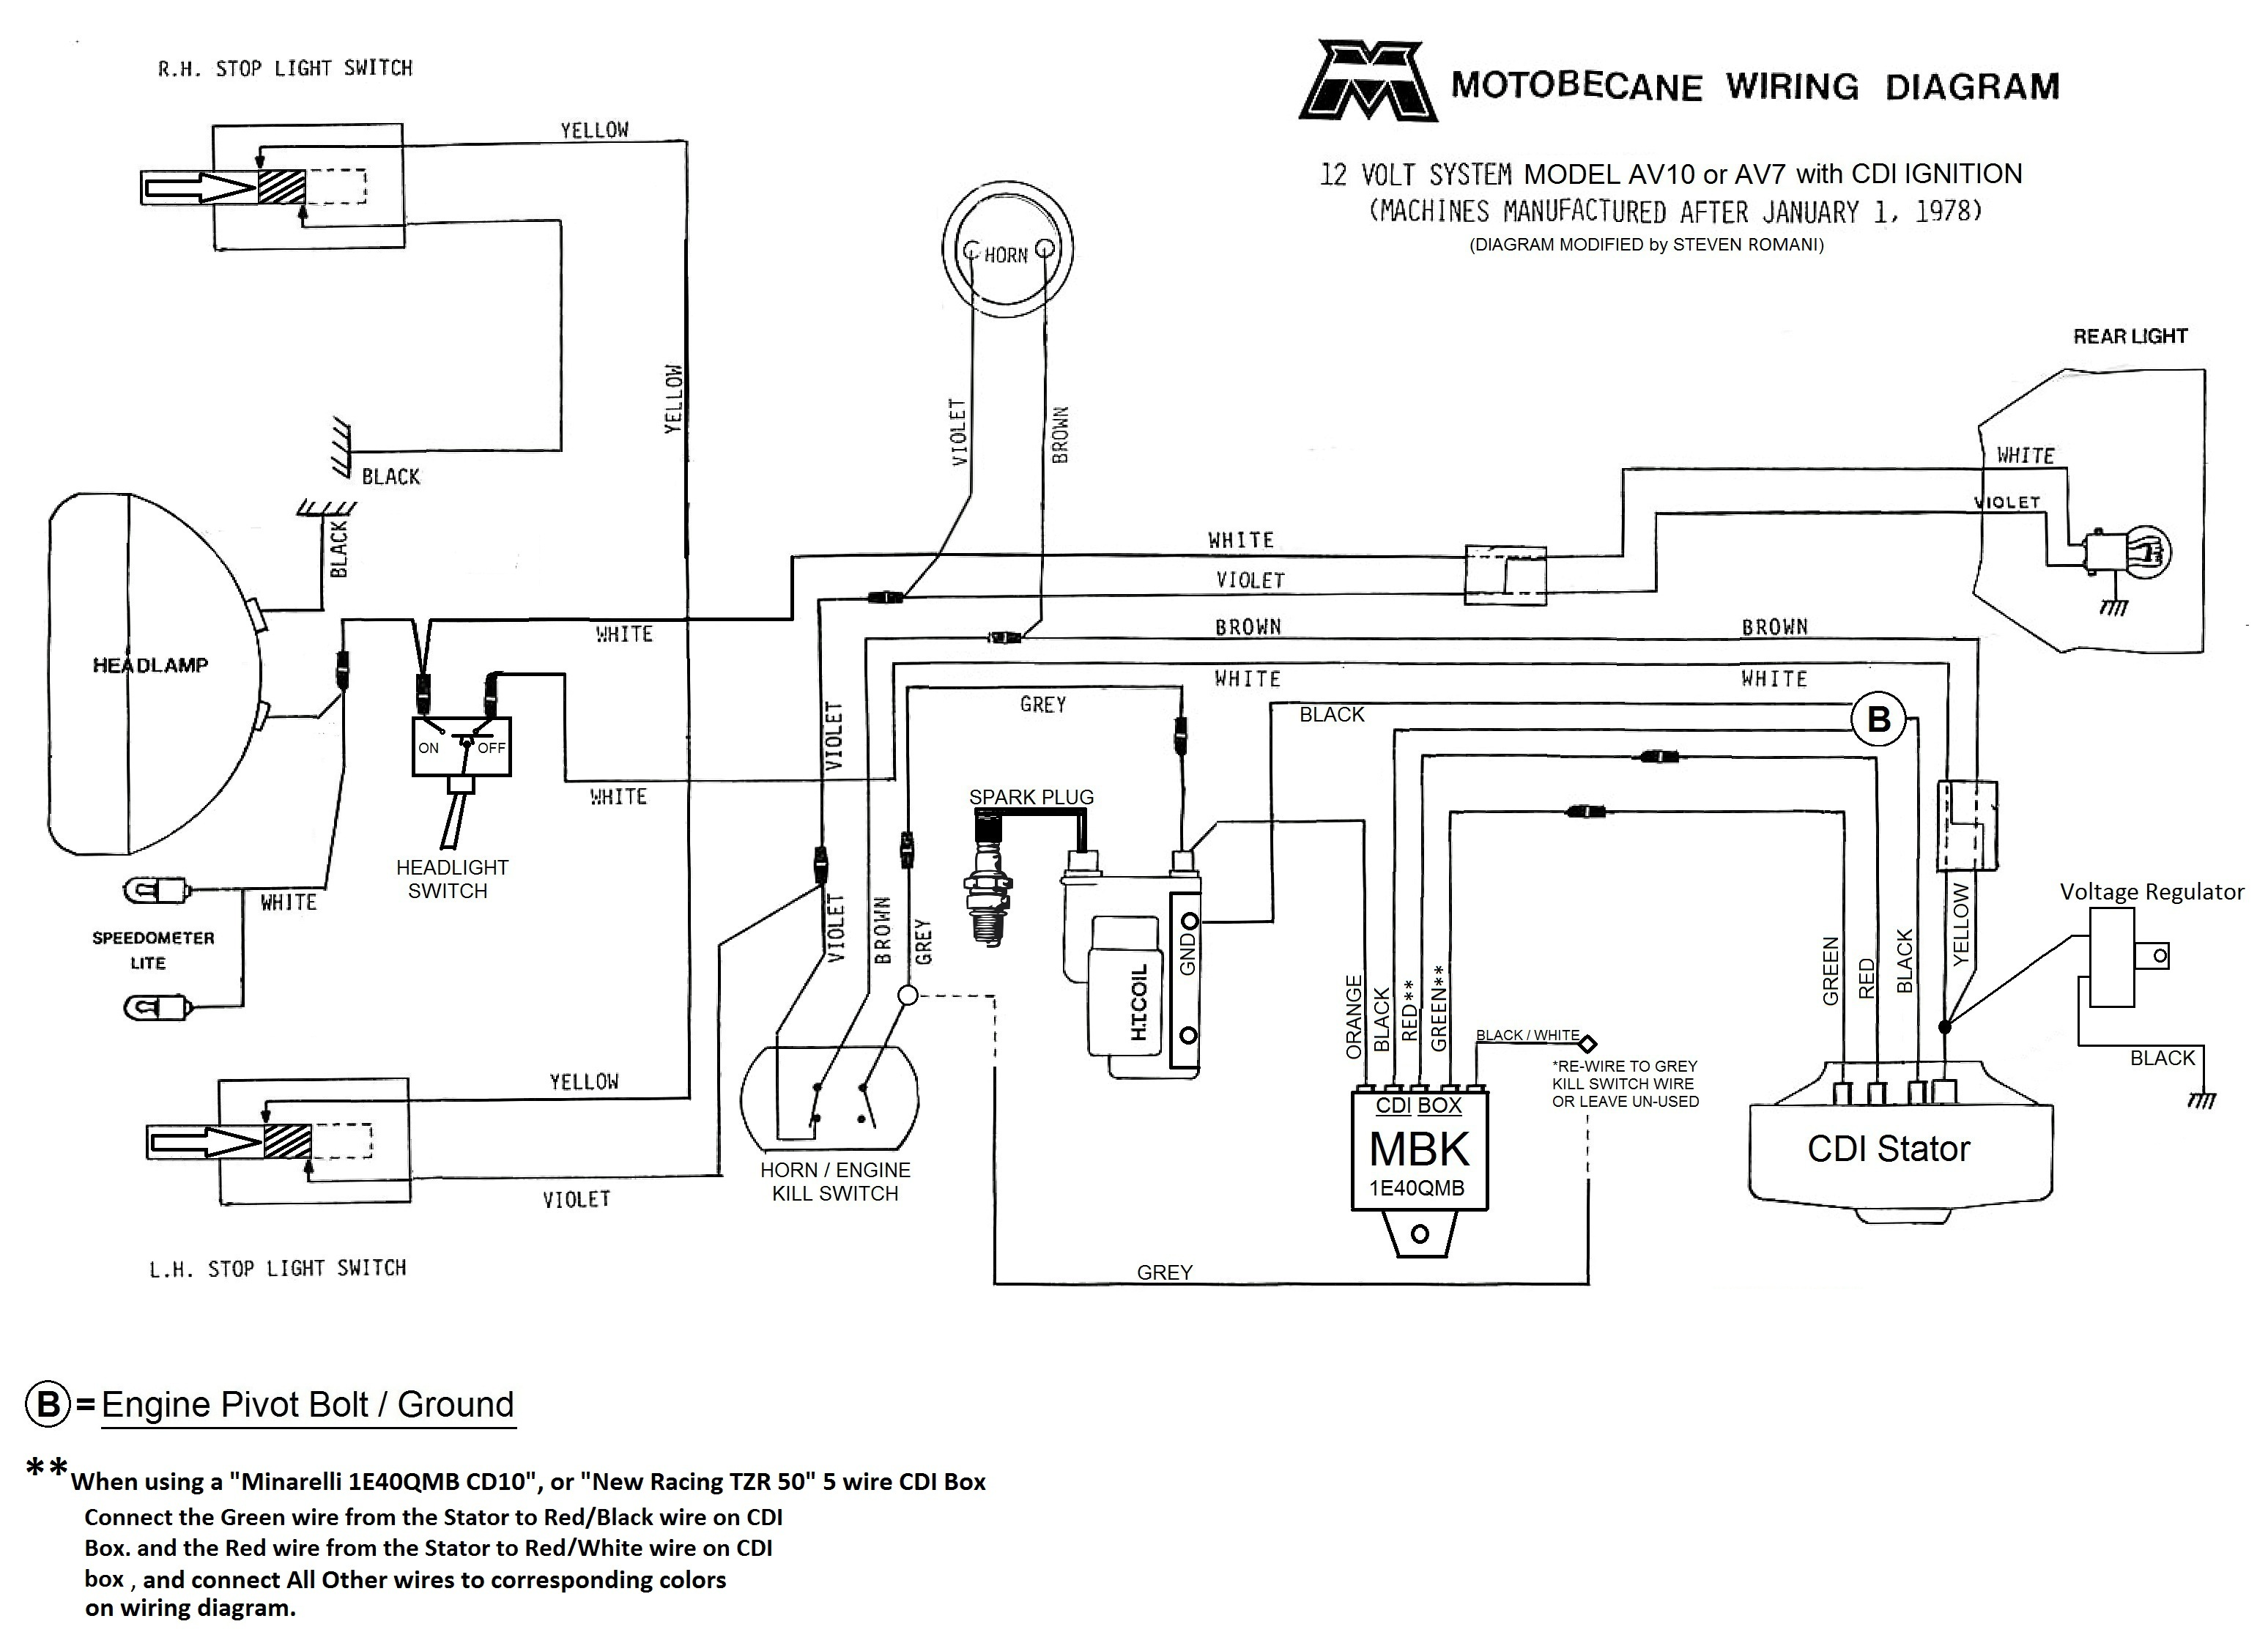 diagram red wire circuit diagram diagram schematic circuit paperdiagram red wire circuit diagram diagram schematic circuit paper ebooks hottubhirehartlepool com